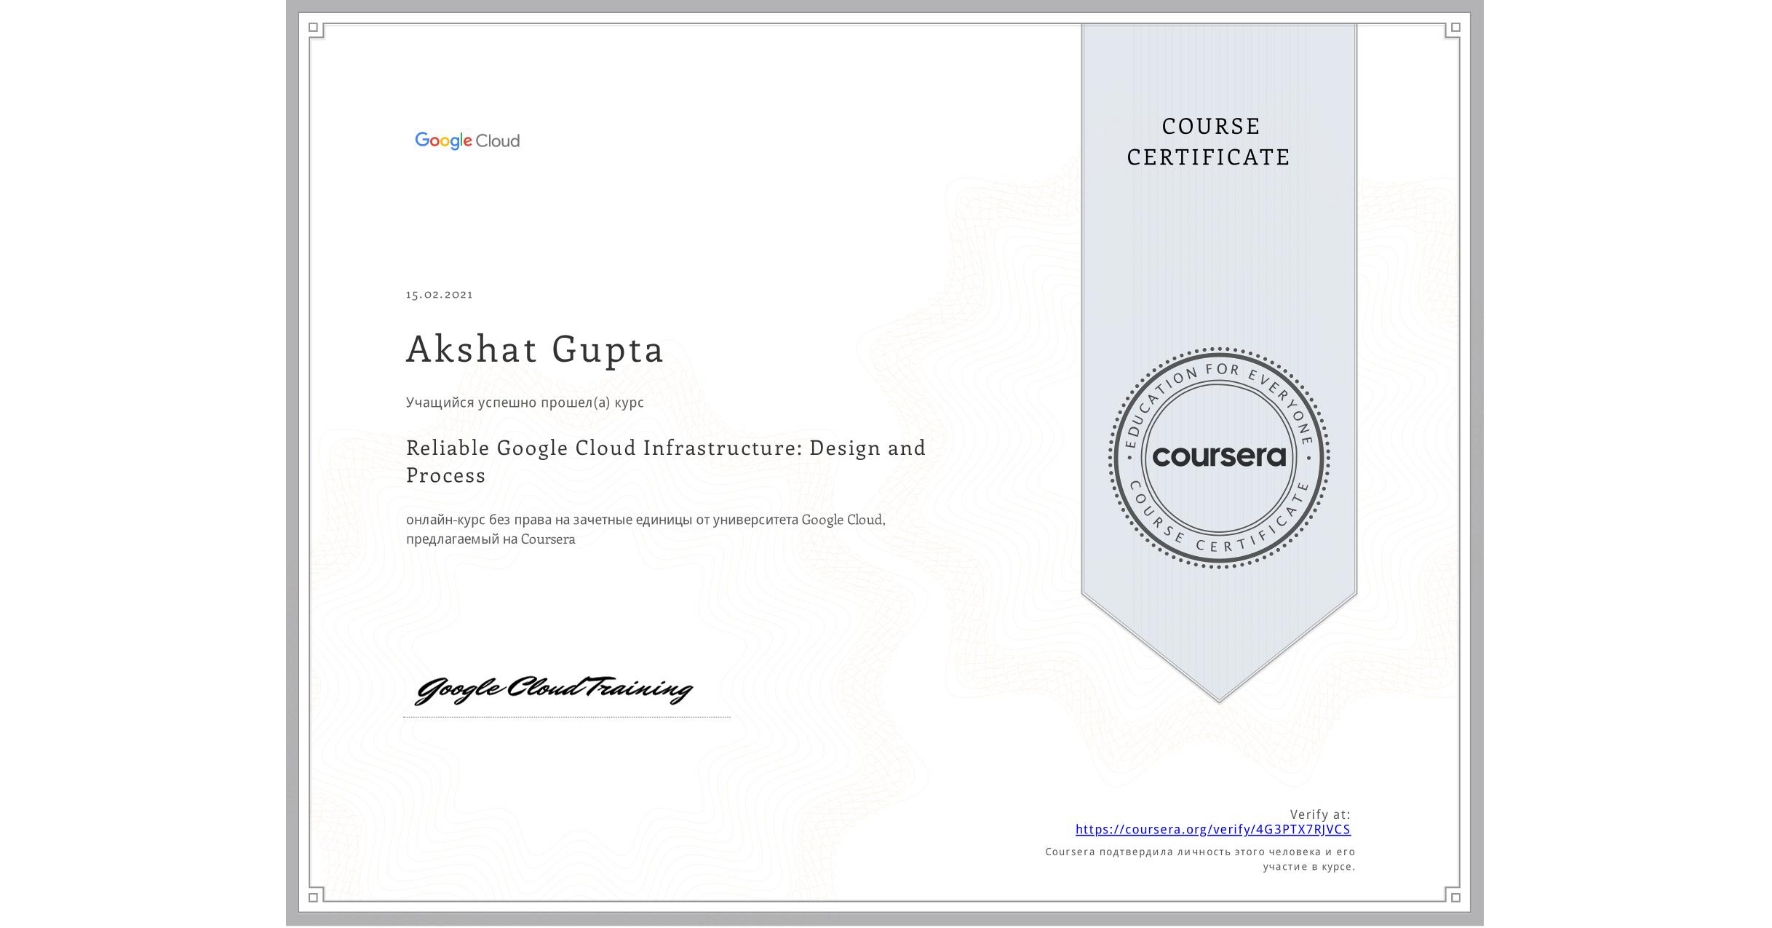 View certificate for Akshat Gupta, Reliable Google Cloud Infrastructure: Design and Process, an online non-credit course authorized by Google Cloud and offered through Coursera